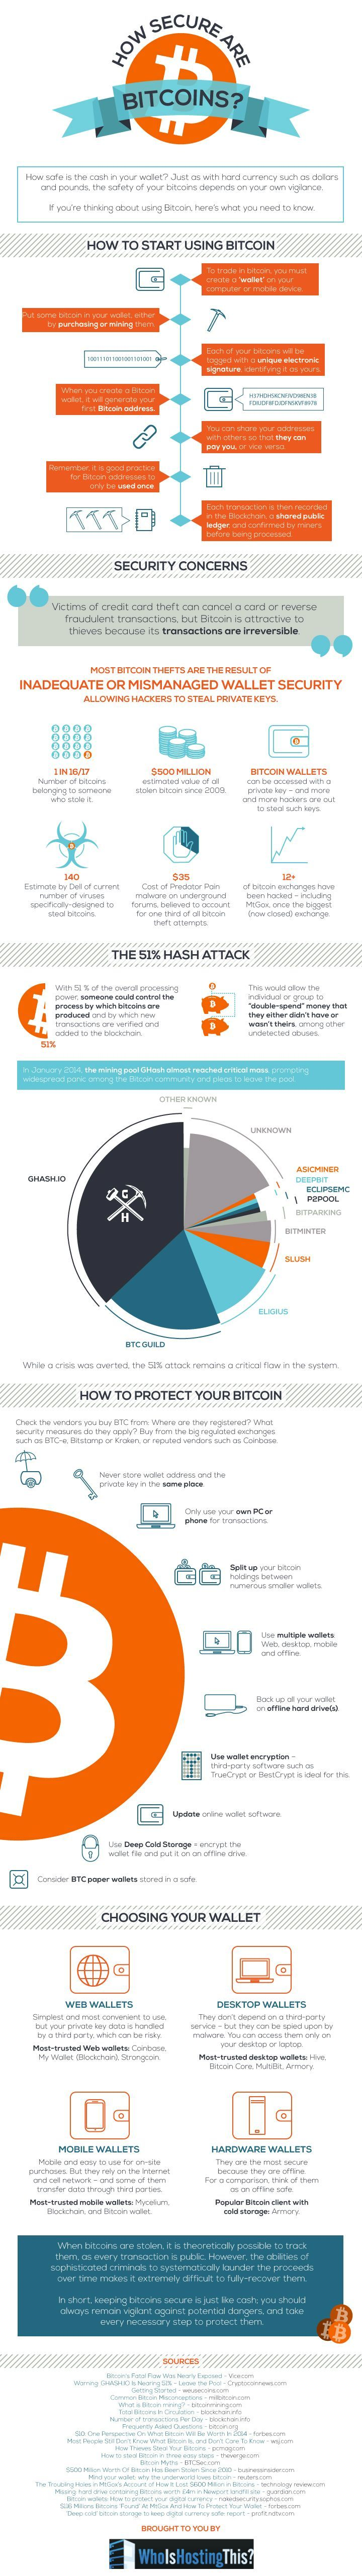 How Secure Are Bitcoins? #infographic